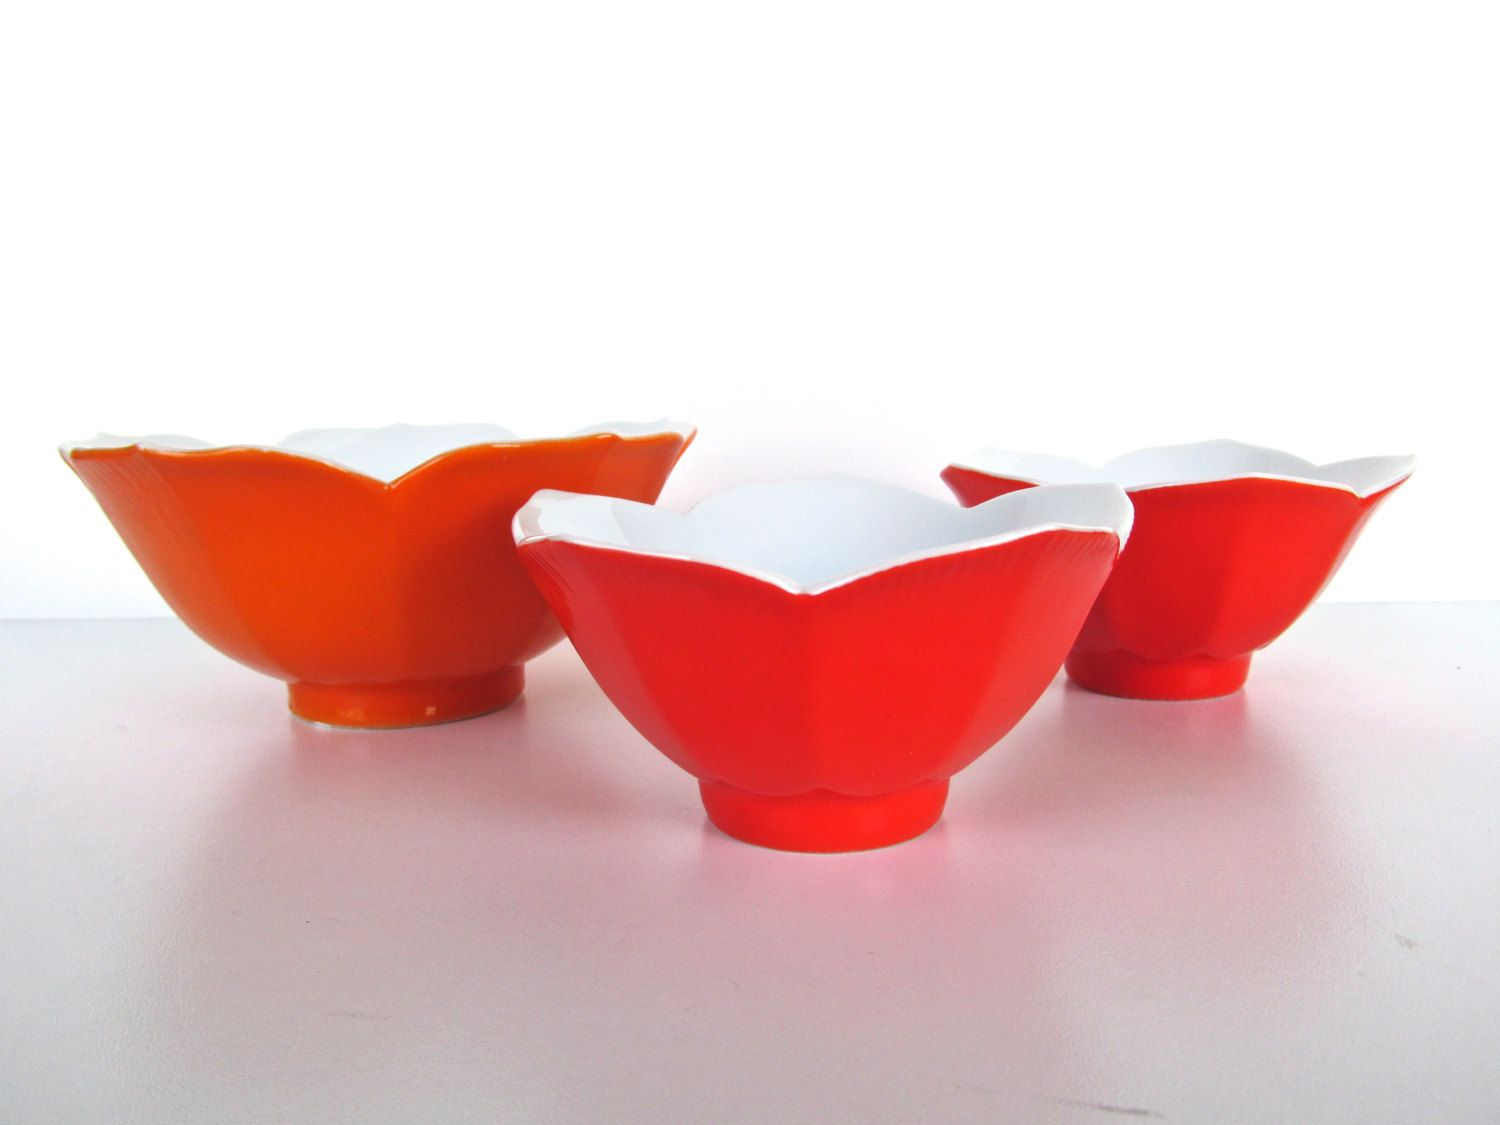 Yellow and White Soup Cereal Bowl BOWL Vintage Brightly Colored Reddish Orange